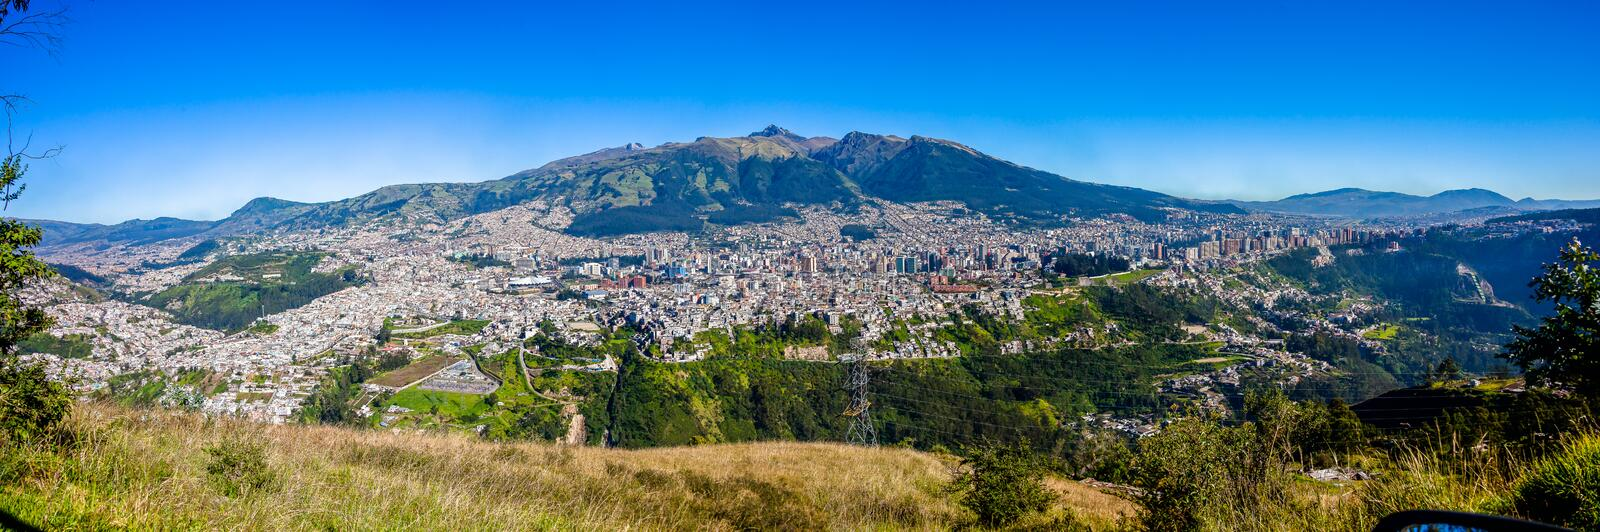 Panorama de Quito, Equateur photos stock